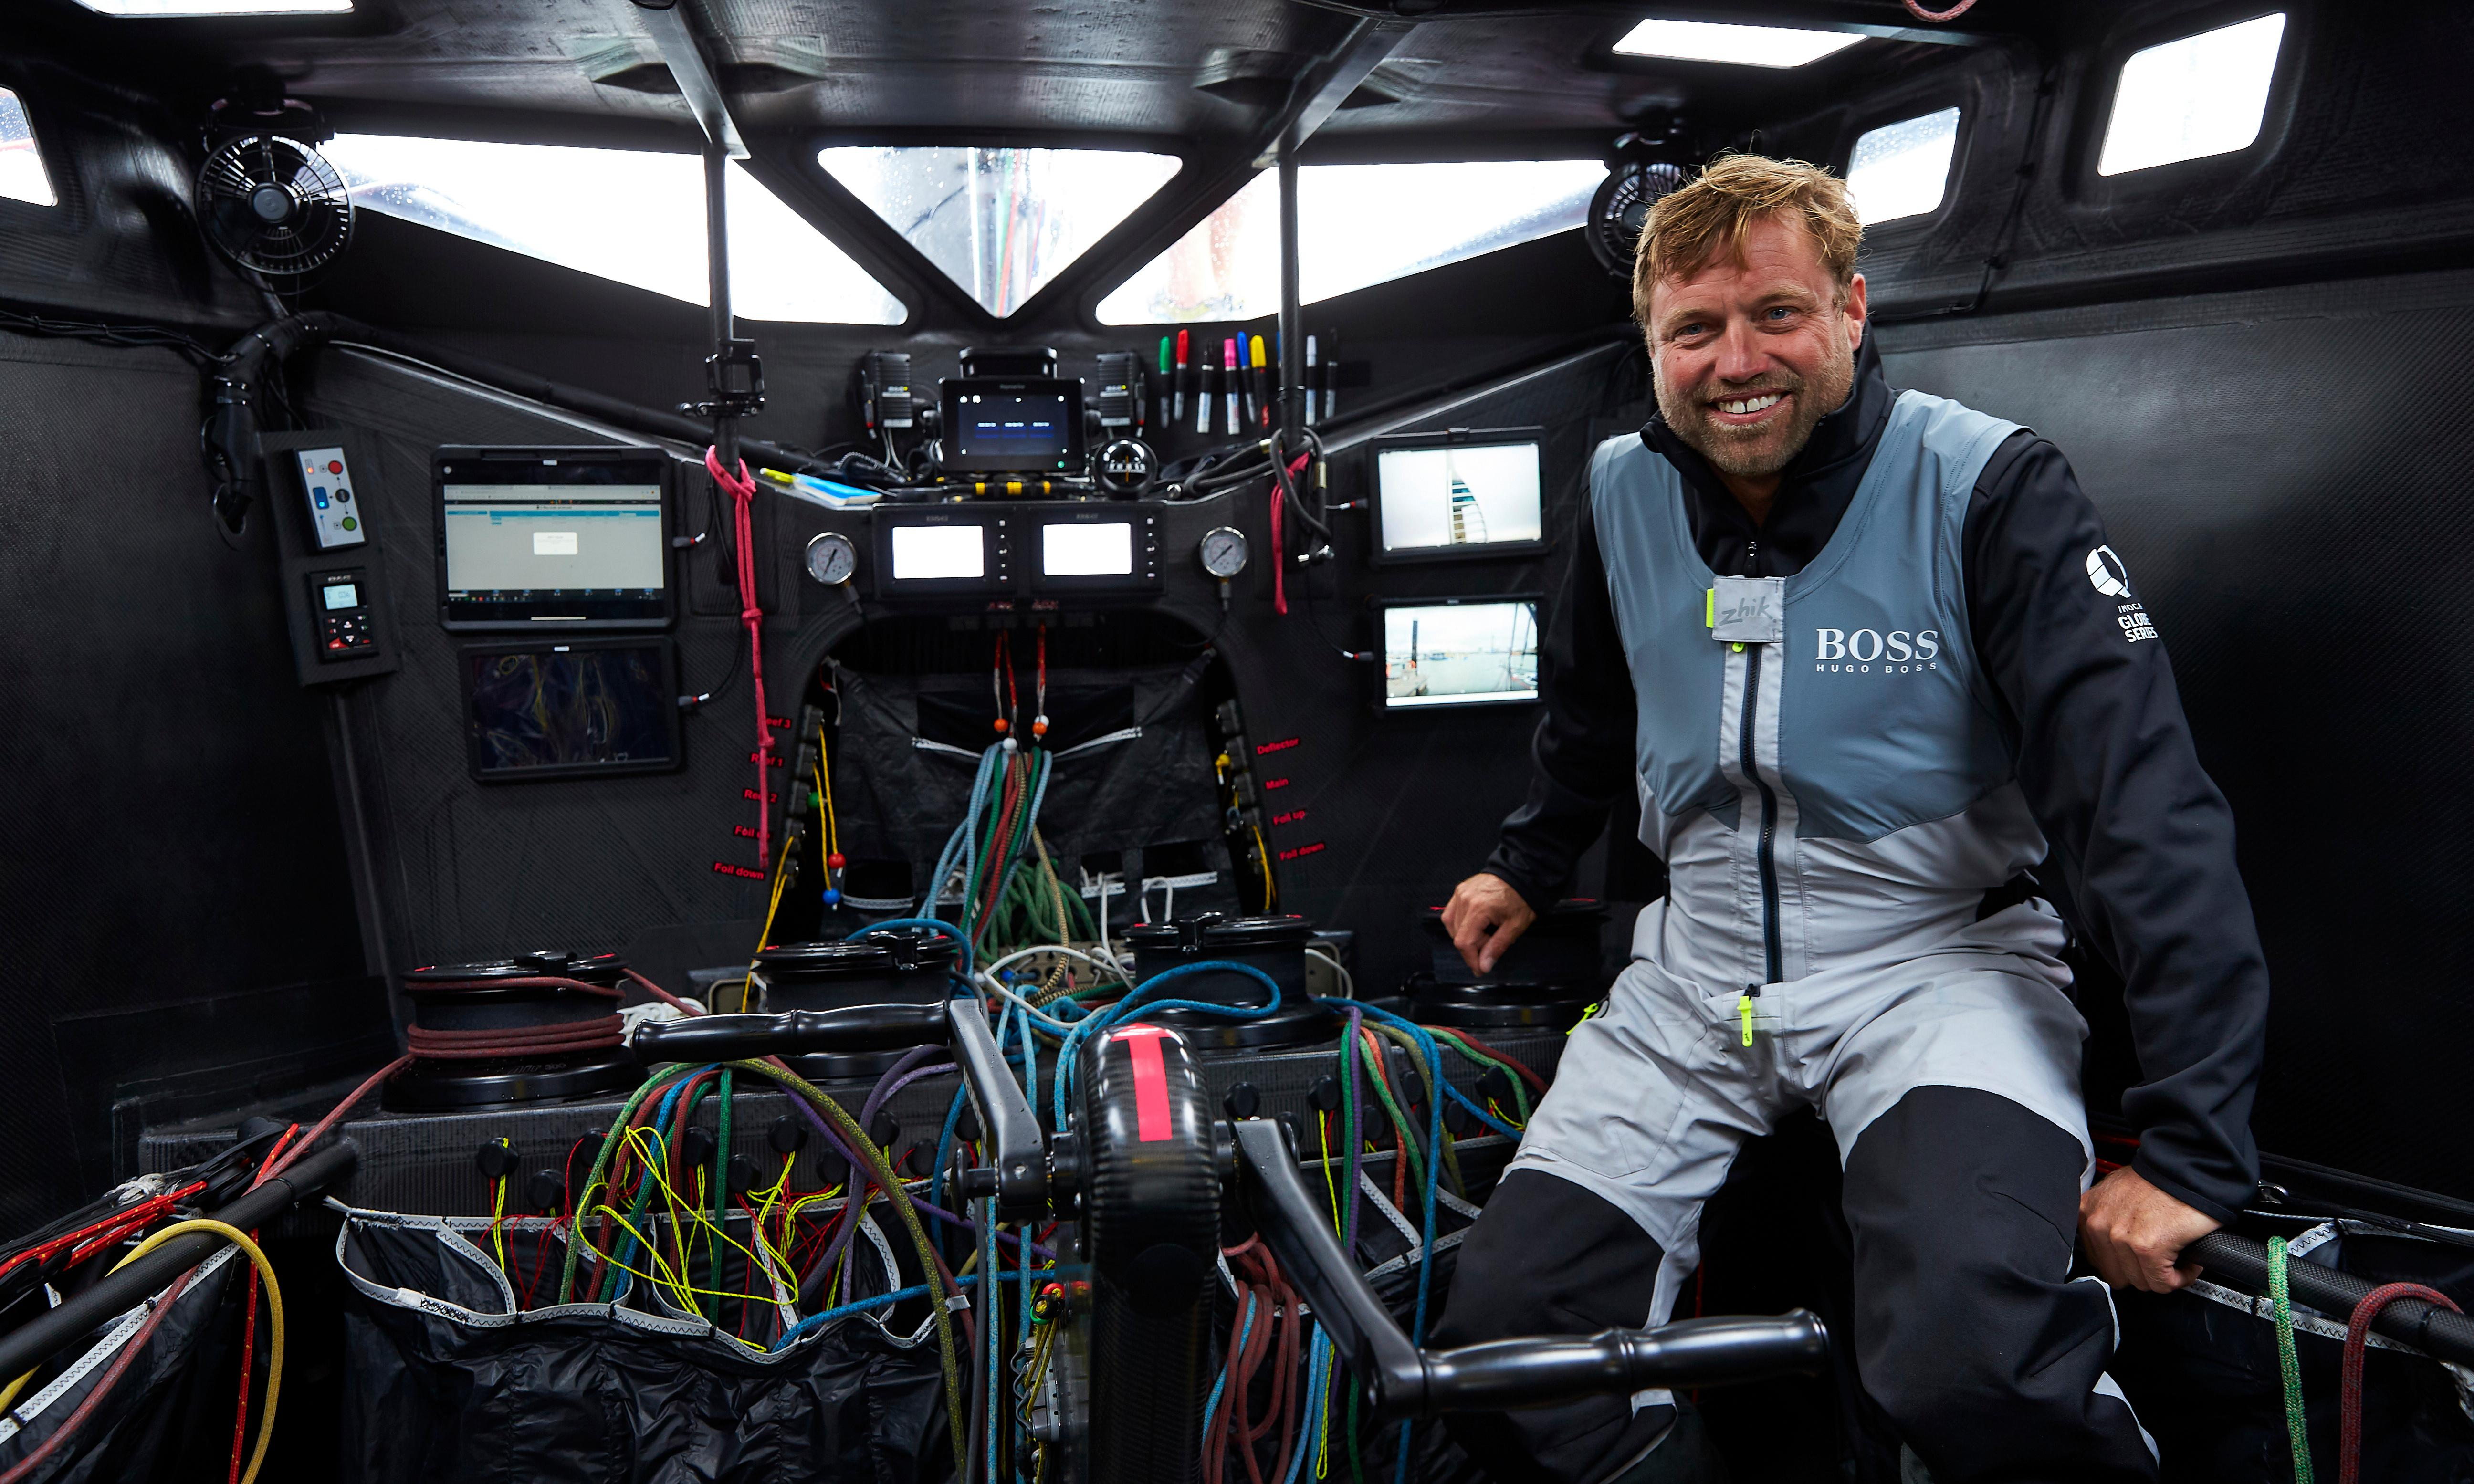 Round-the-world sailor Alex Thomson: 'I think the French are worried about us'